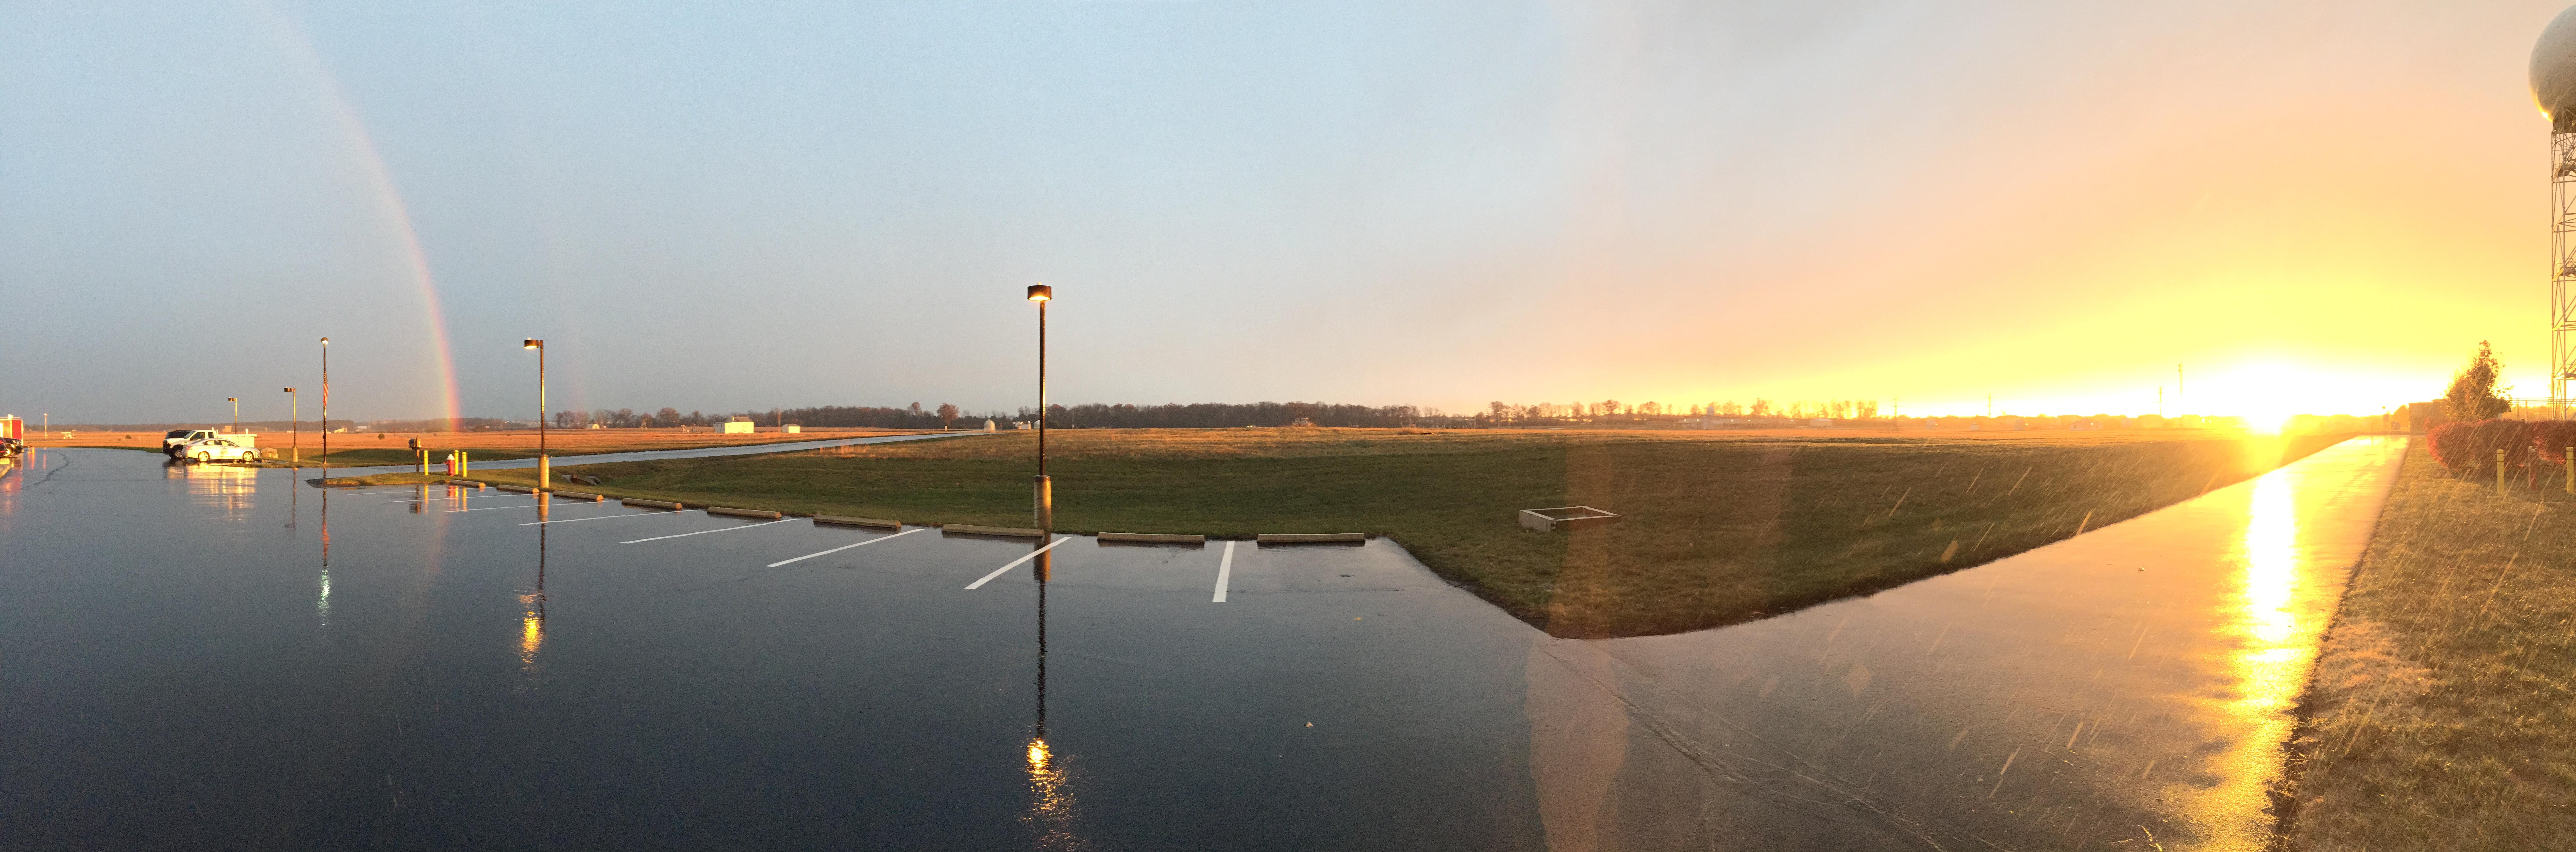 File2016 11 19 16 39 12 Panorama Of A Rainbow And Sunset